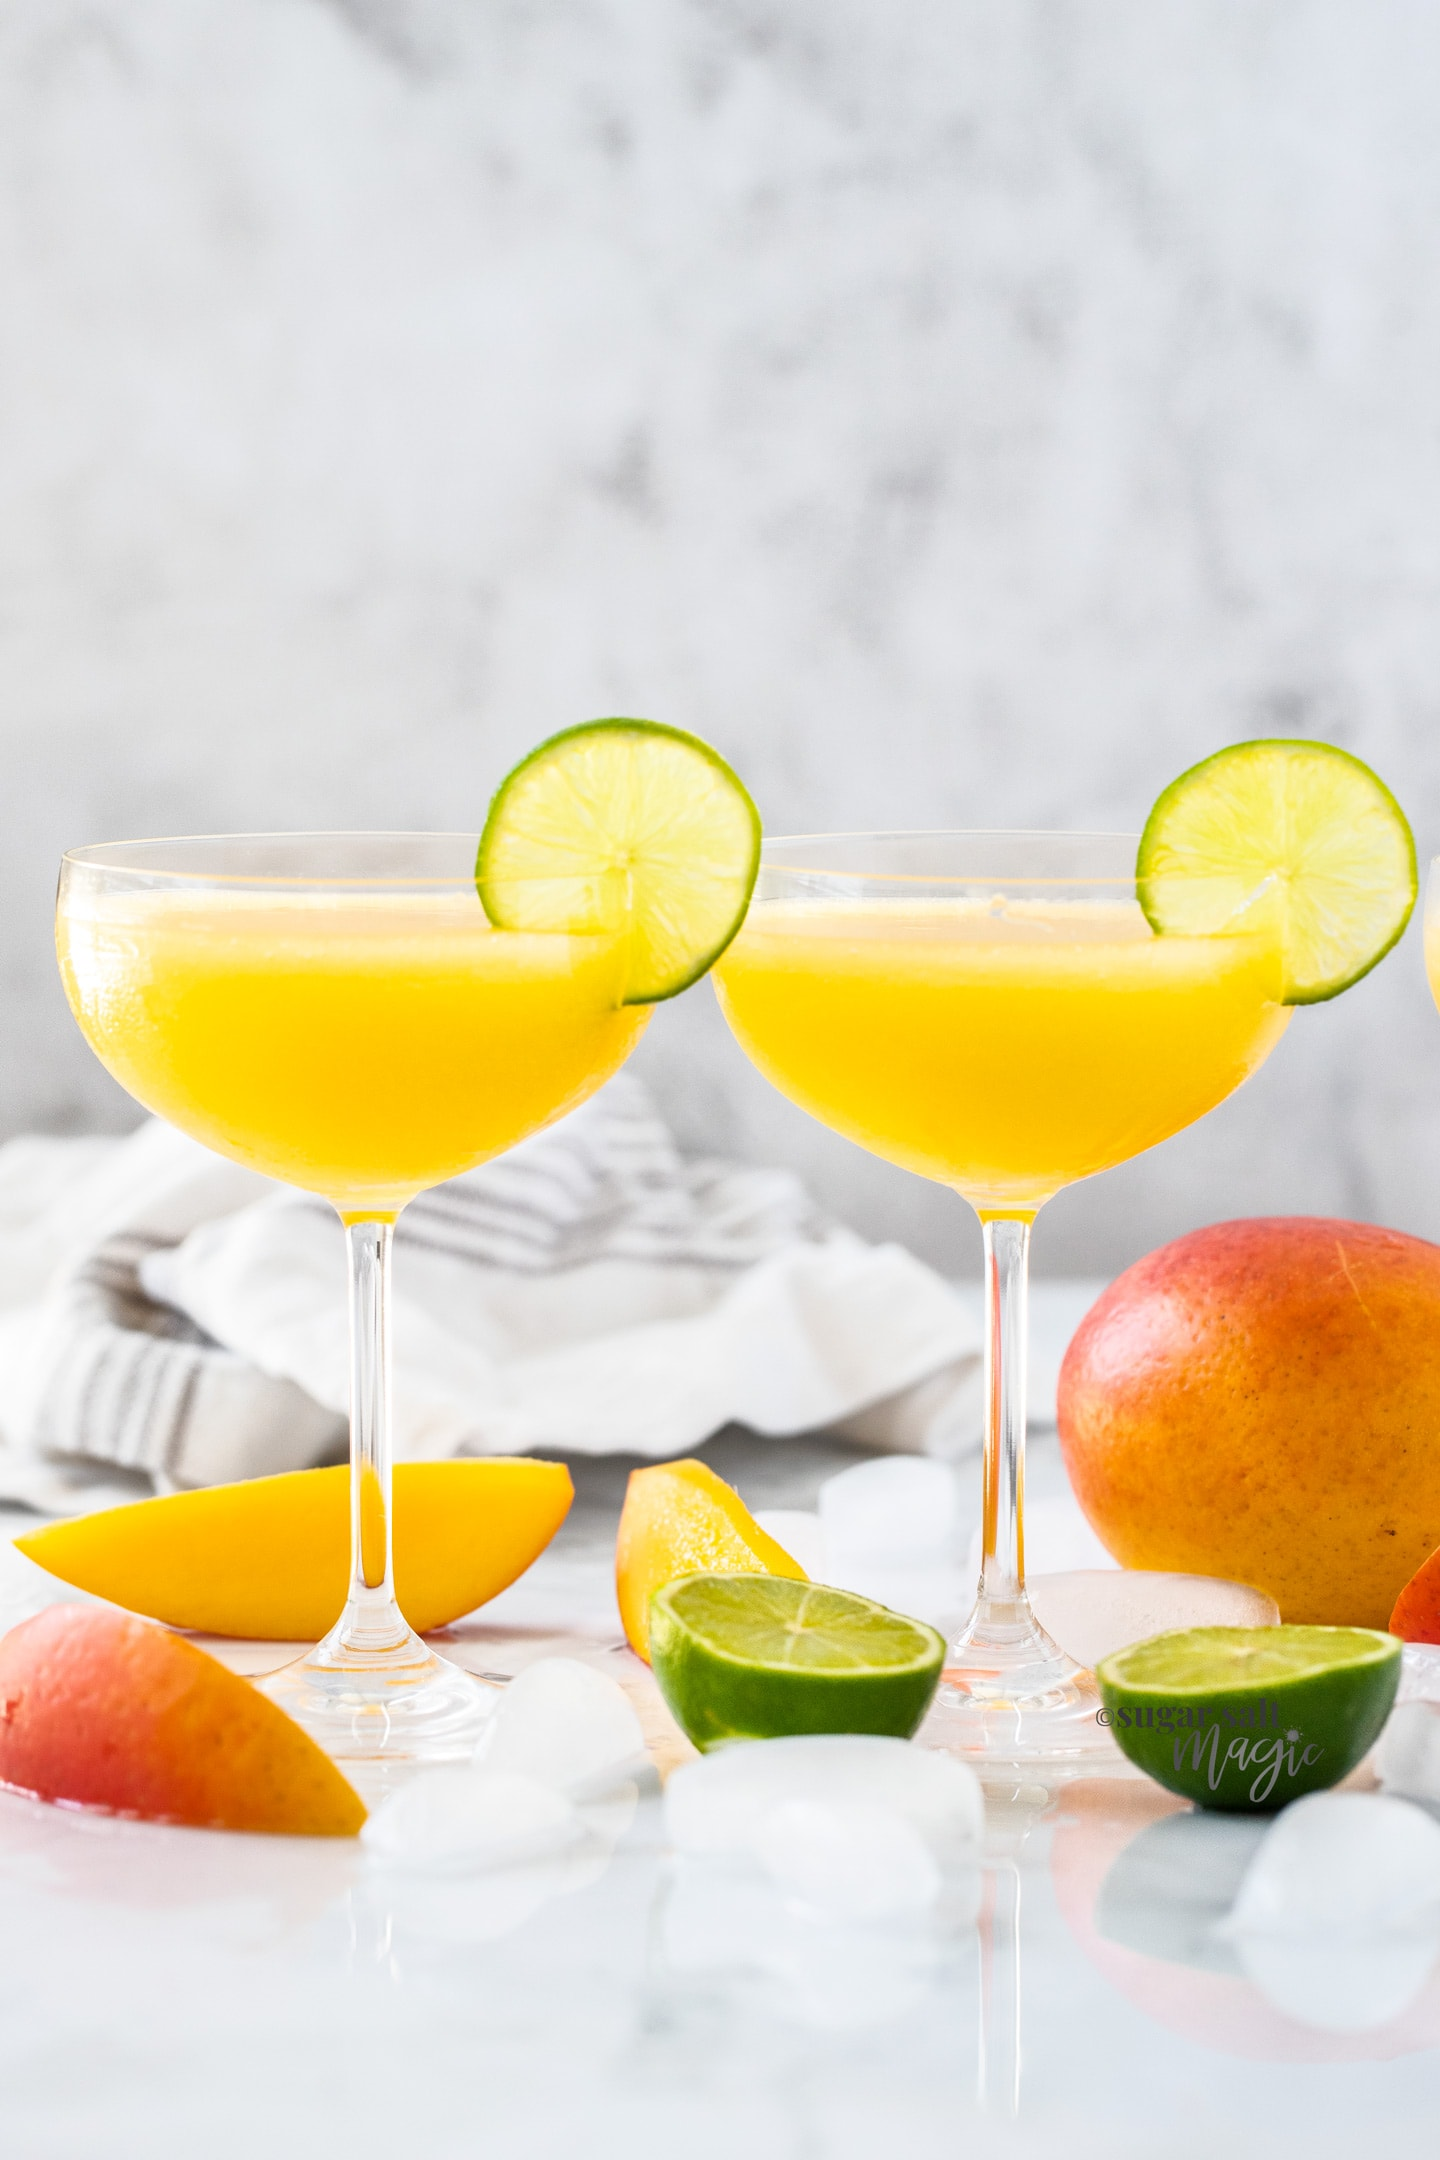 2 champagne saucers filled with mango daiquiri with a slice of lime on the edge